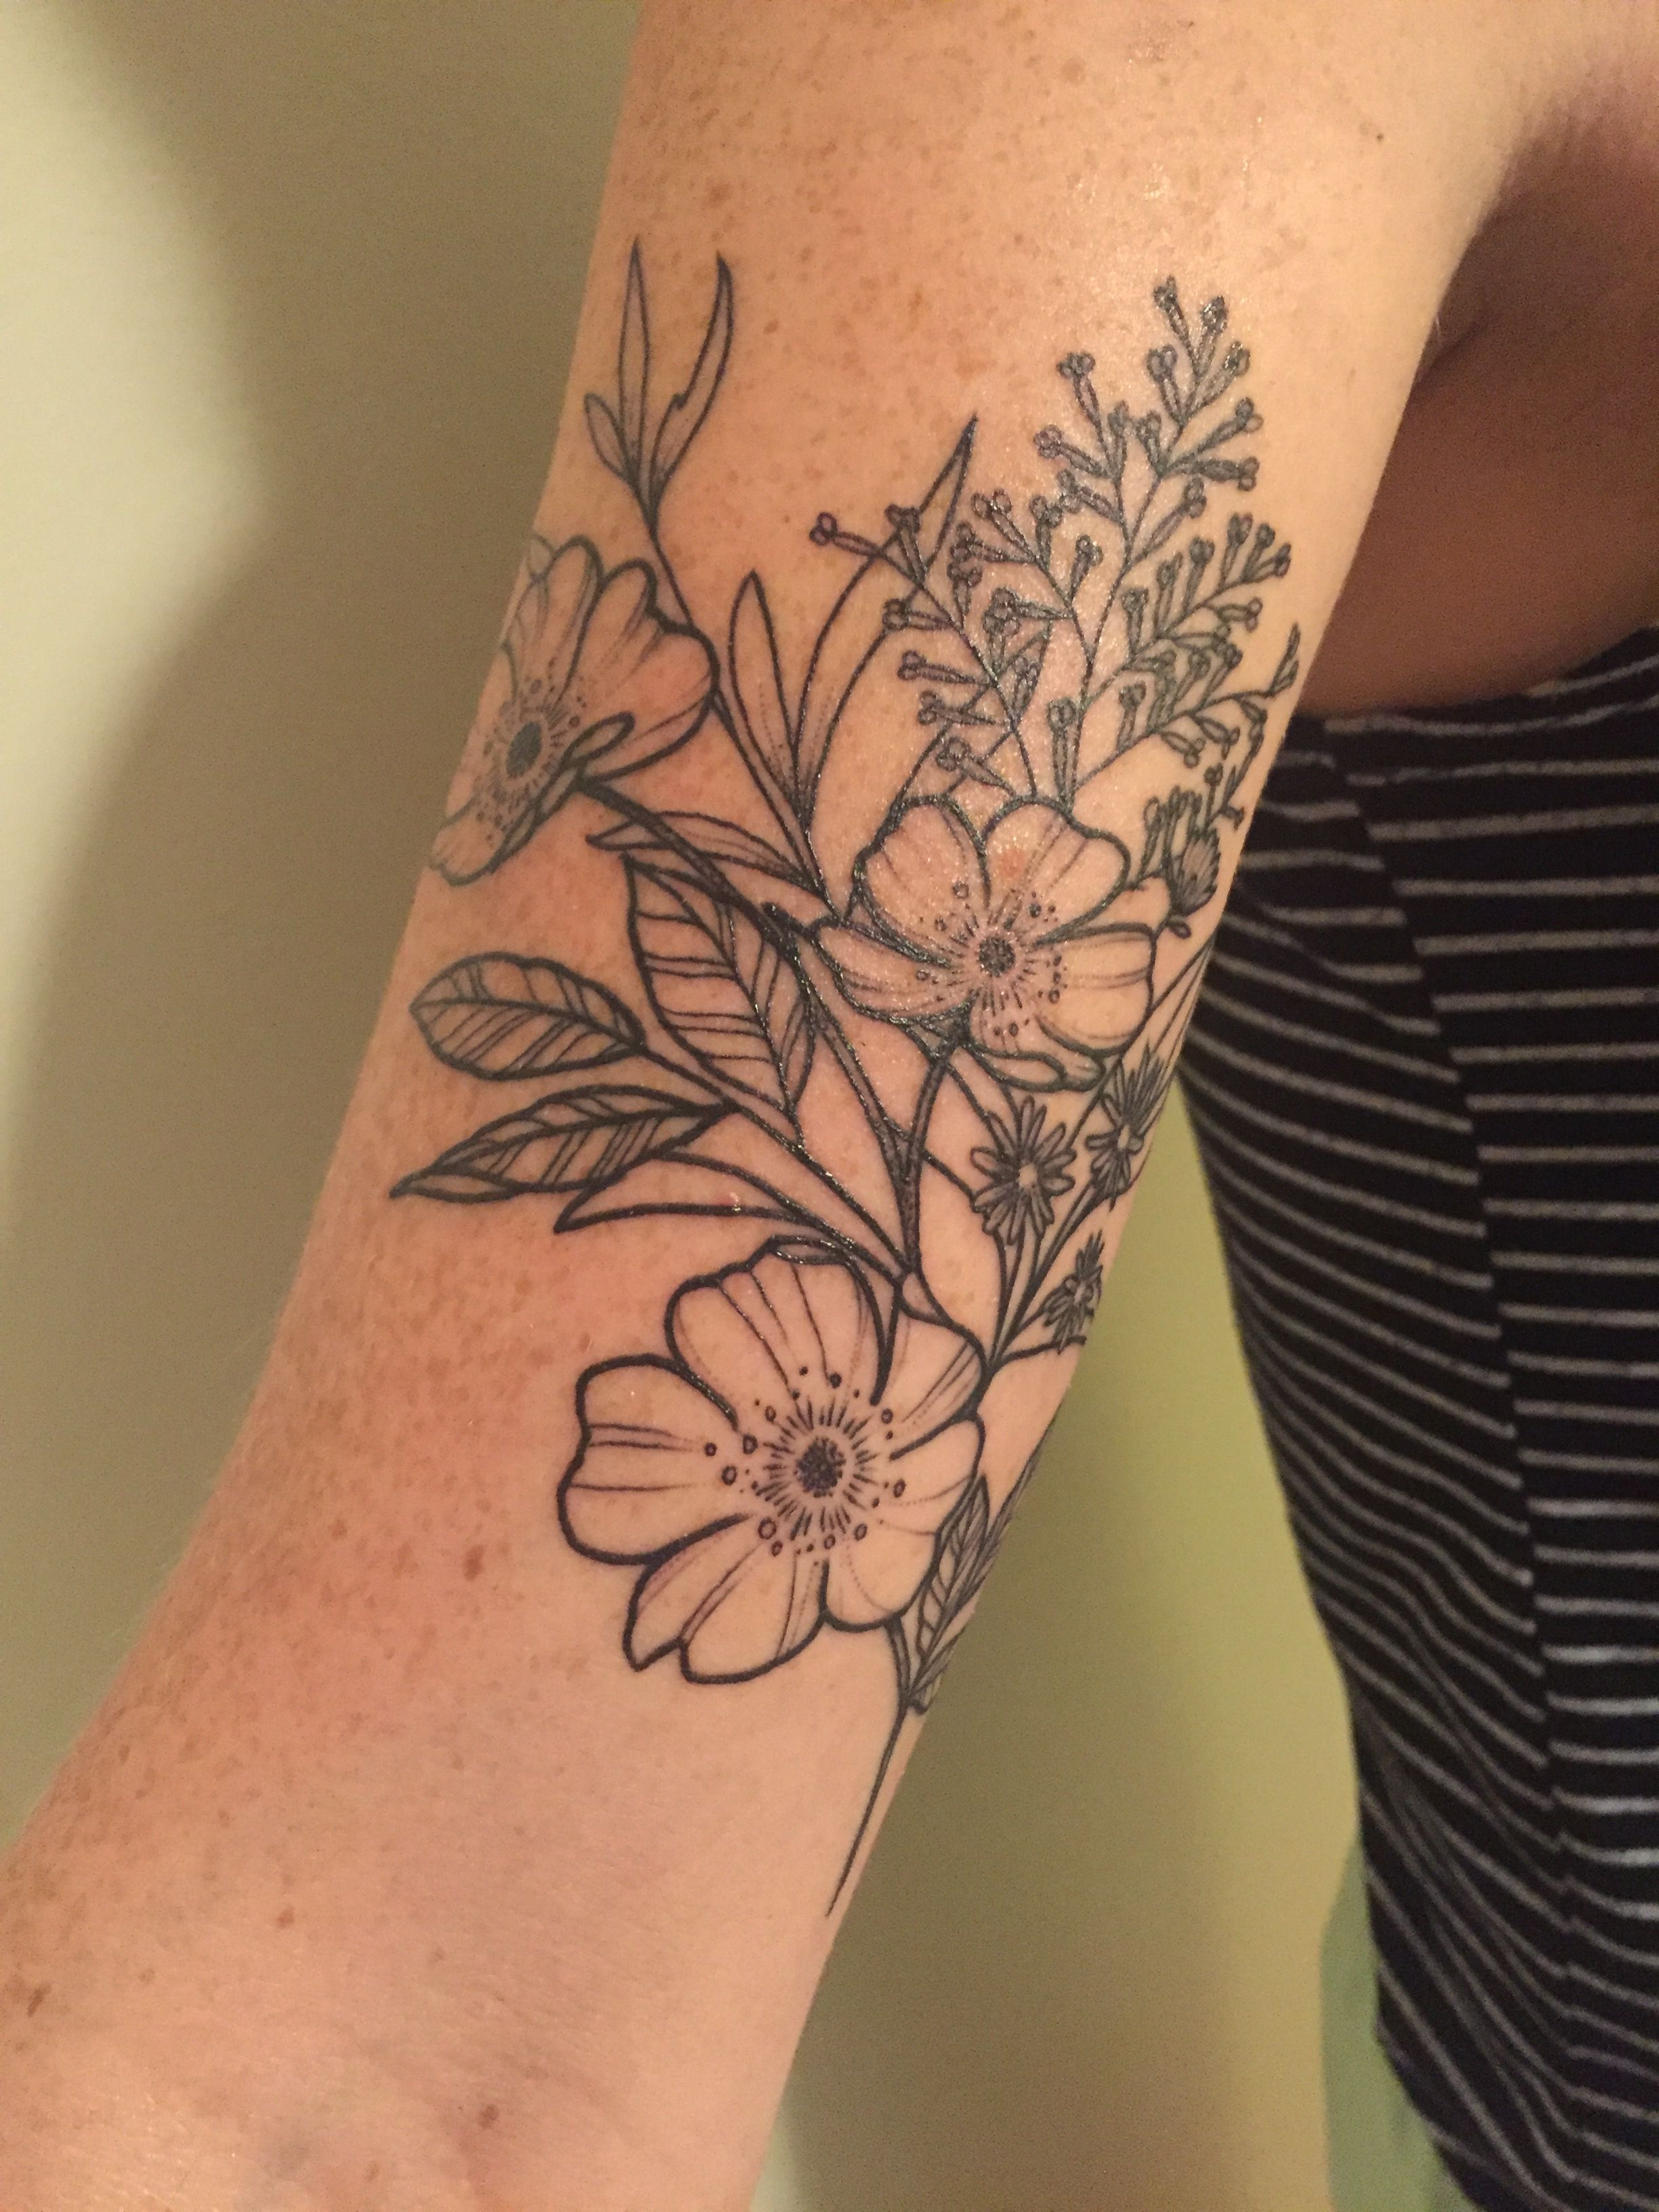 Floral Wildflower Arm Tattoo With Wild Rose Heather Aster Field